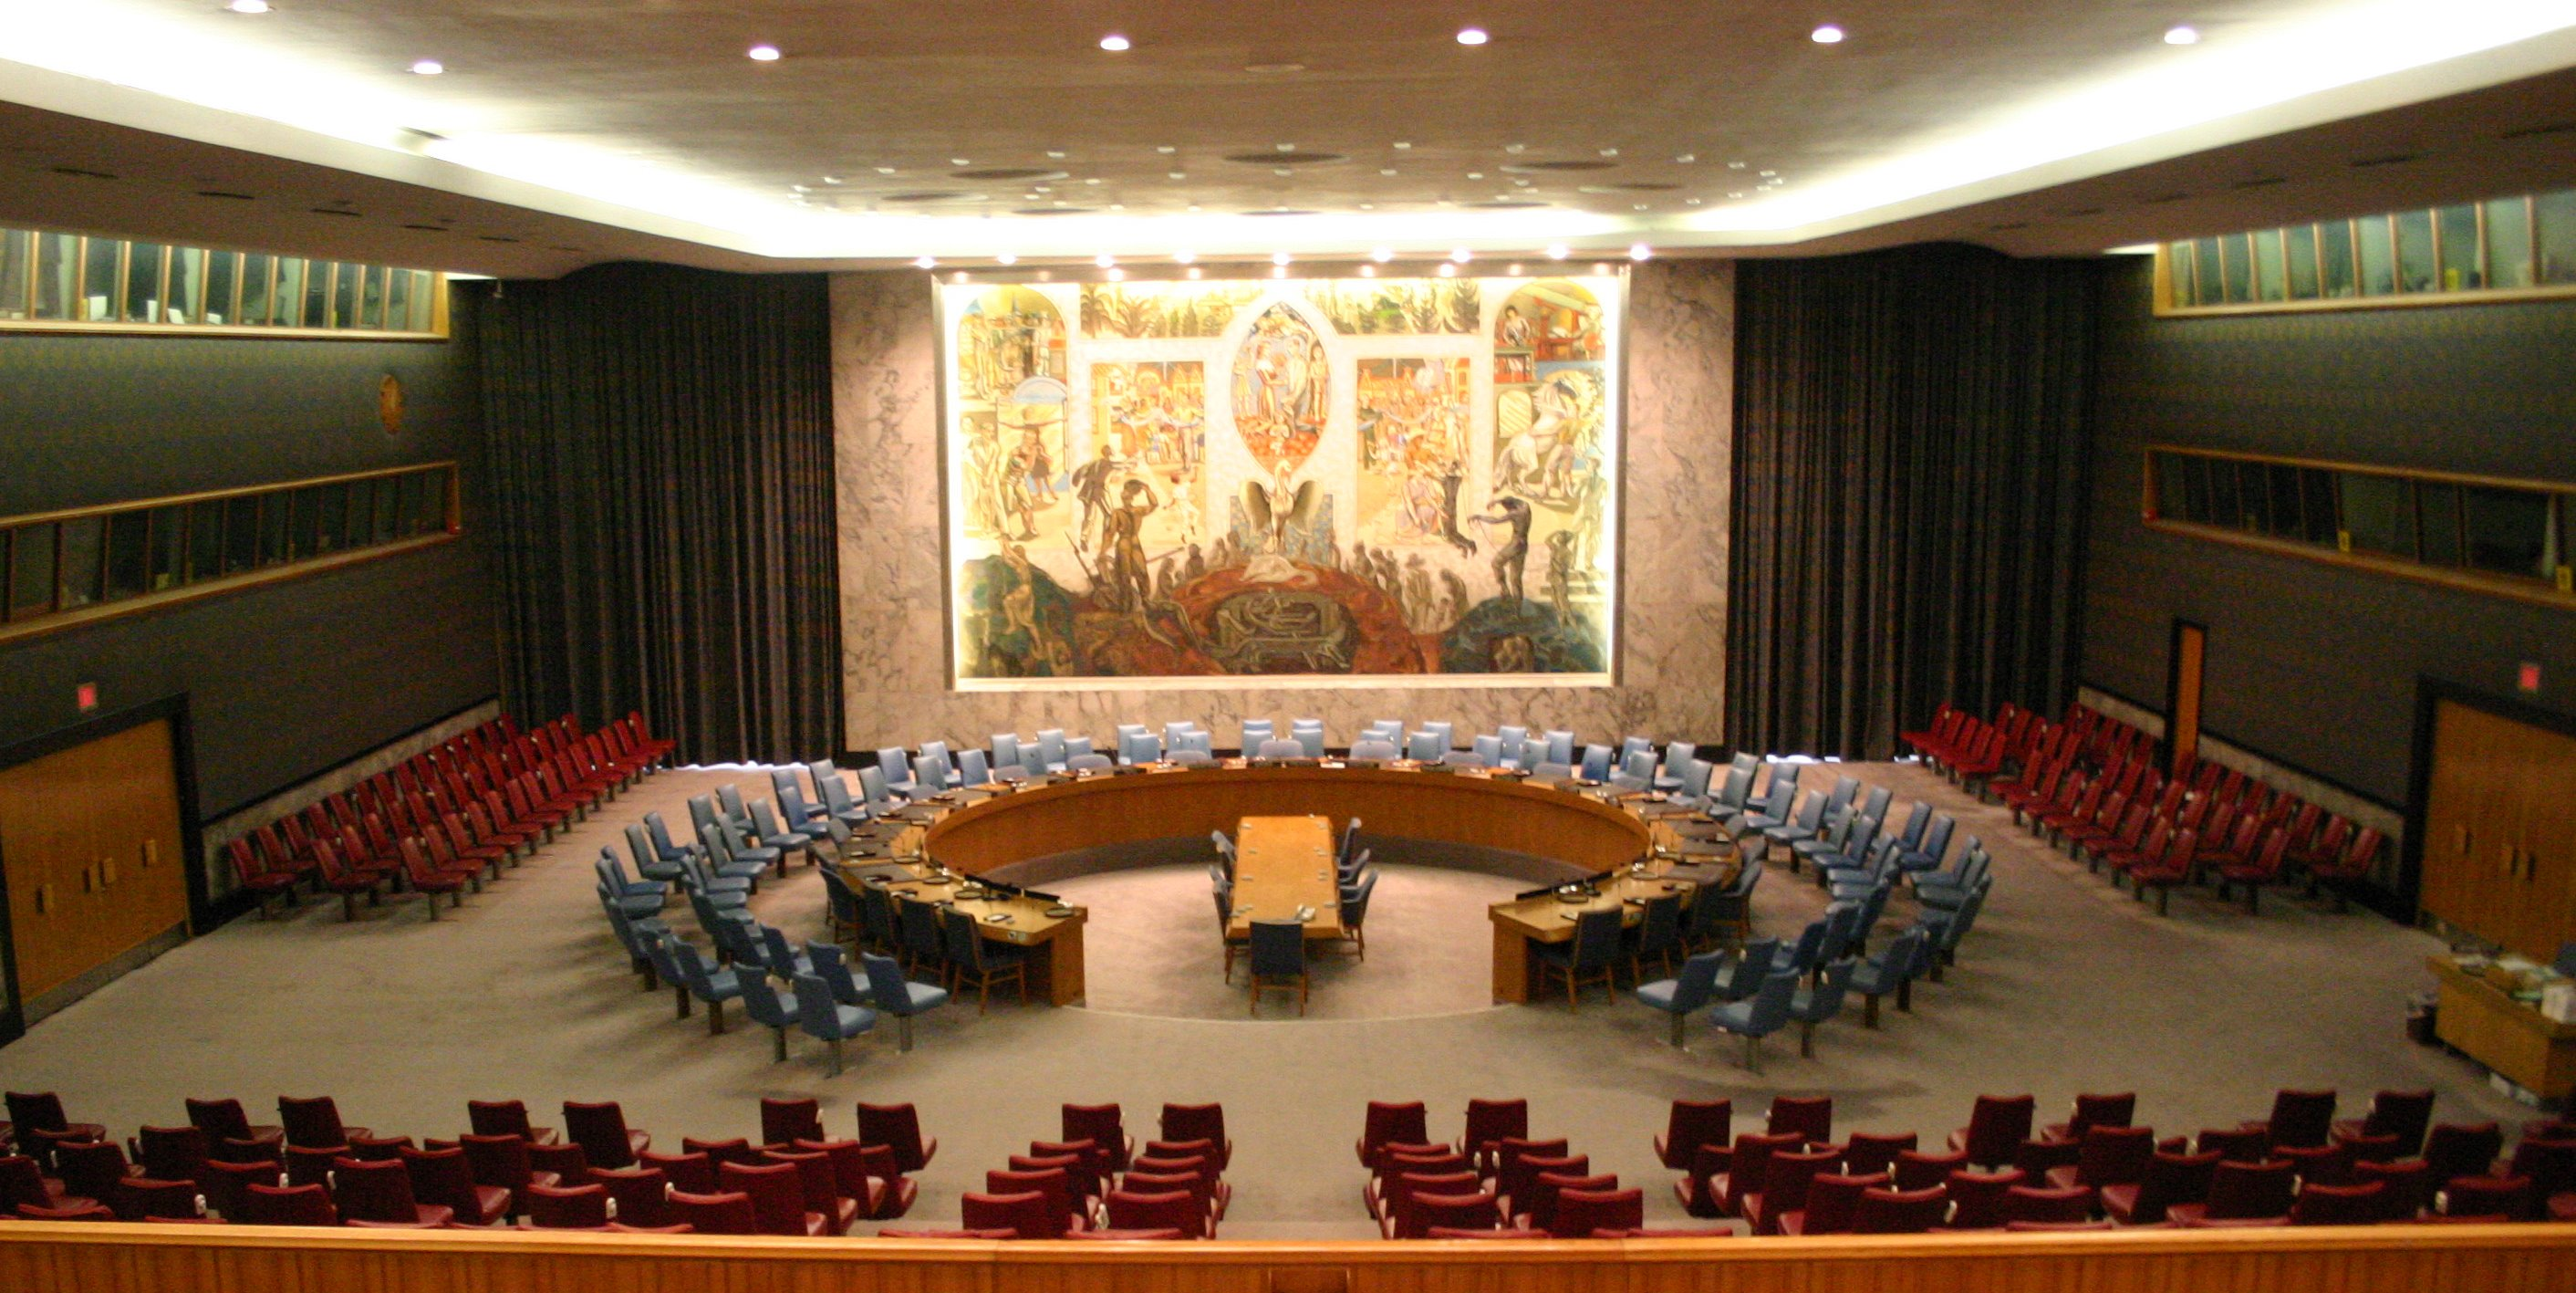 security council The security council shall be presided over by a president who will declare the opening and closing of each security council meeting, direct the discussion of the council meetings, ensure the observance of these rules, accord the right to speak, put questions, and announce decisions.